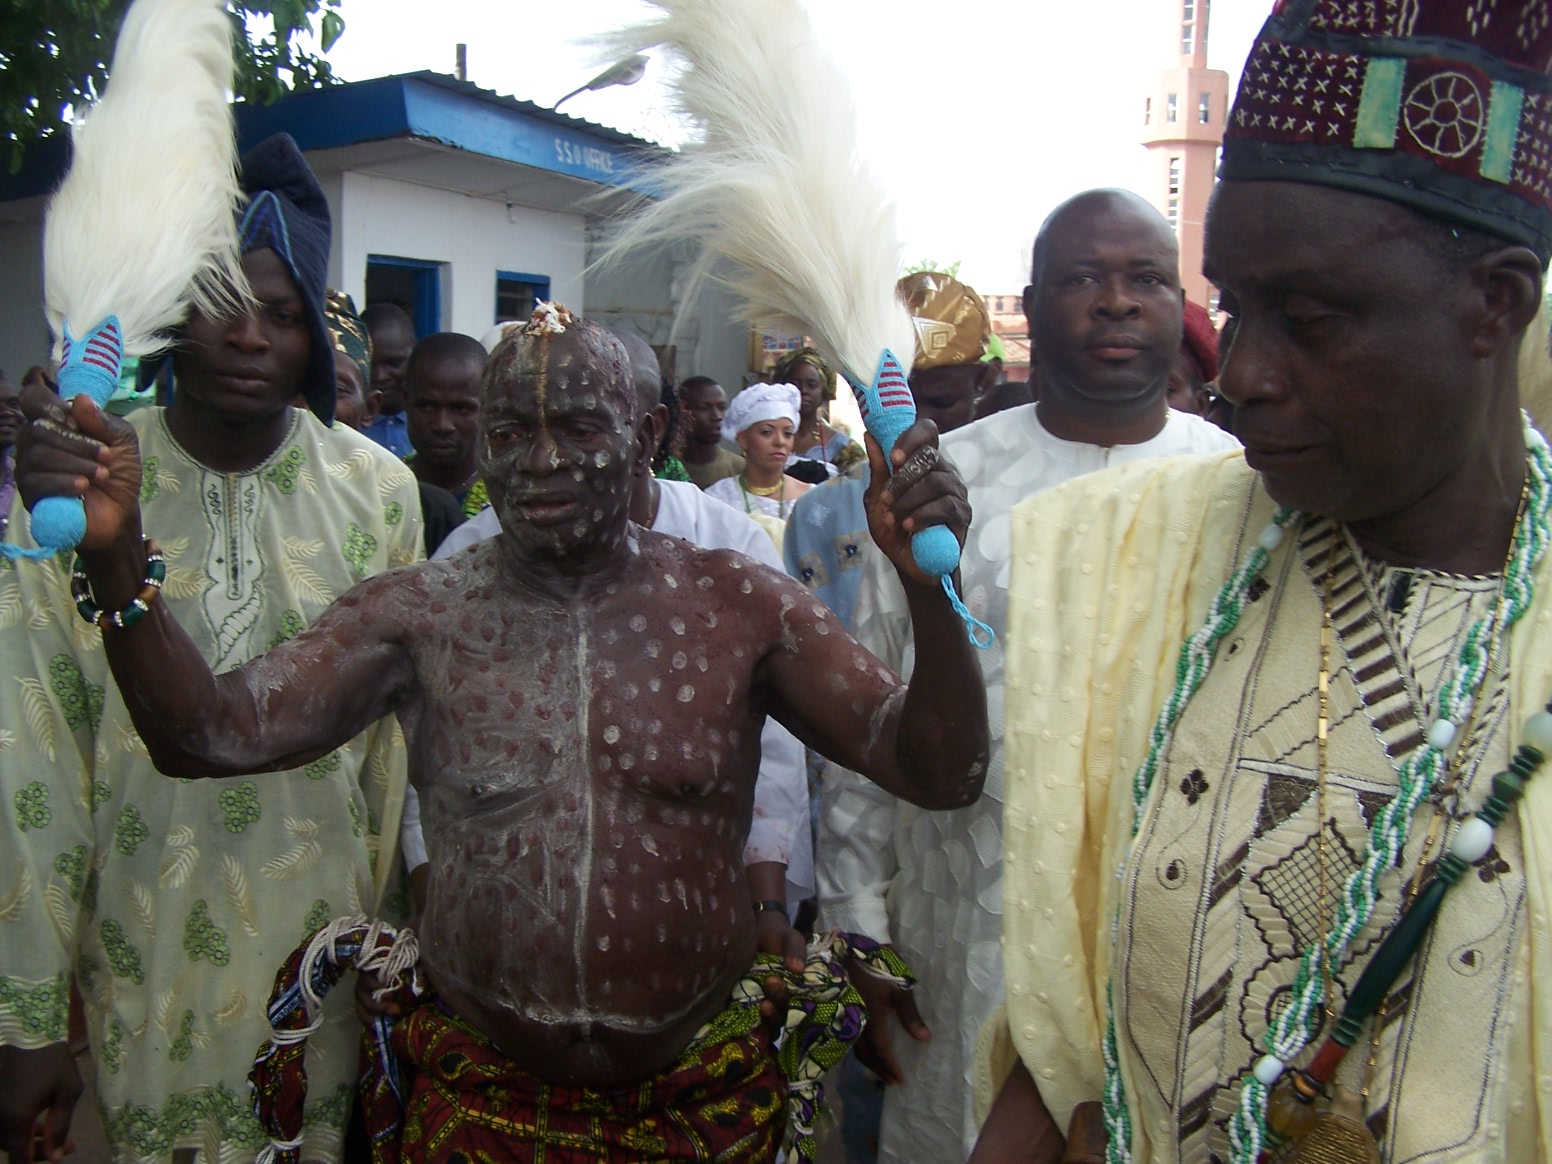 102 3151 Ife People: The Ancient Artistic, Highly Spiritual And The First Yoruba People